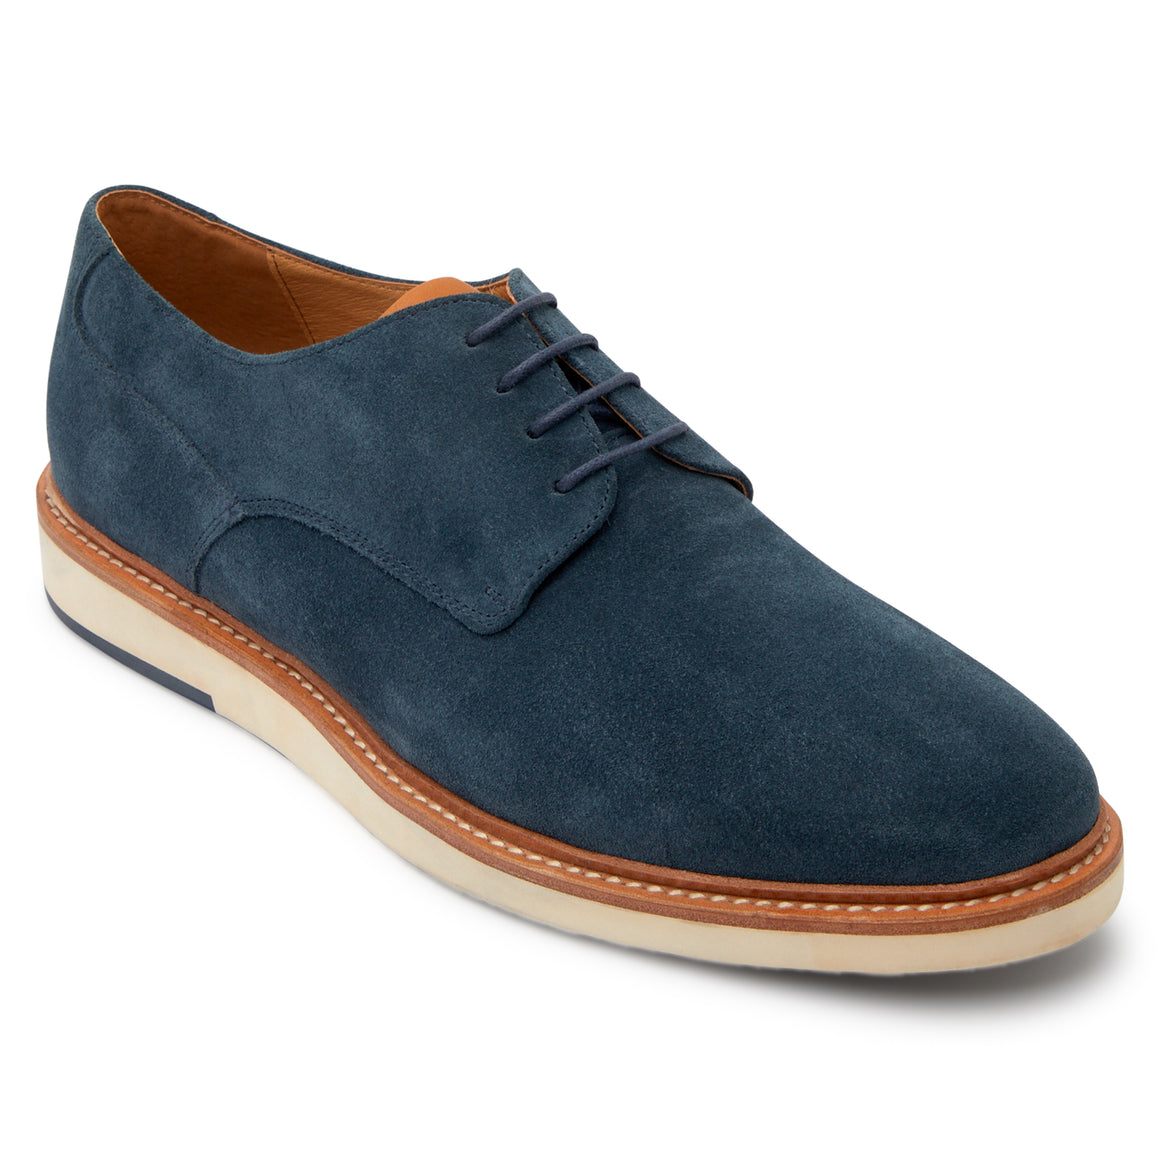 Saville Navy Derby Shoes